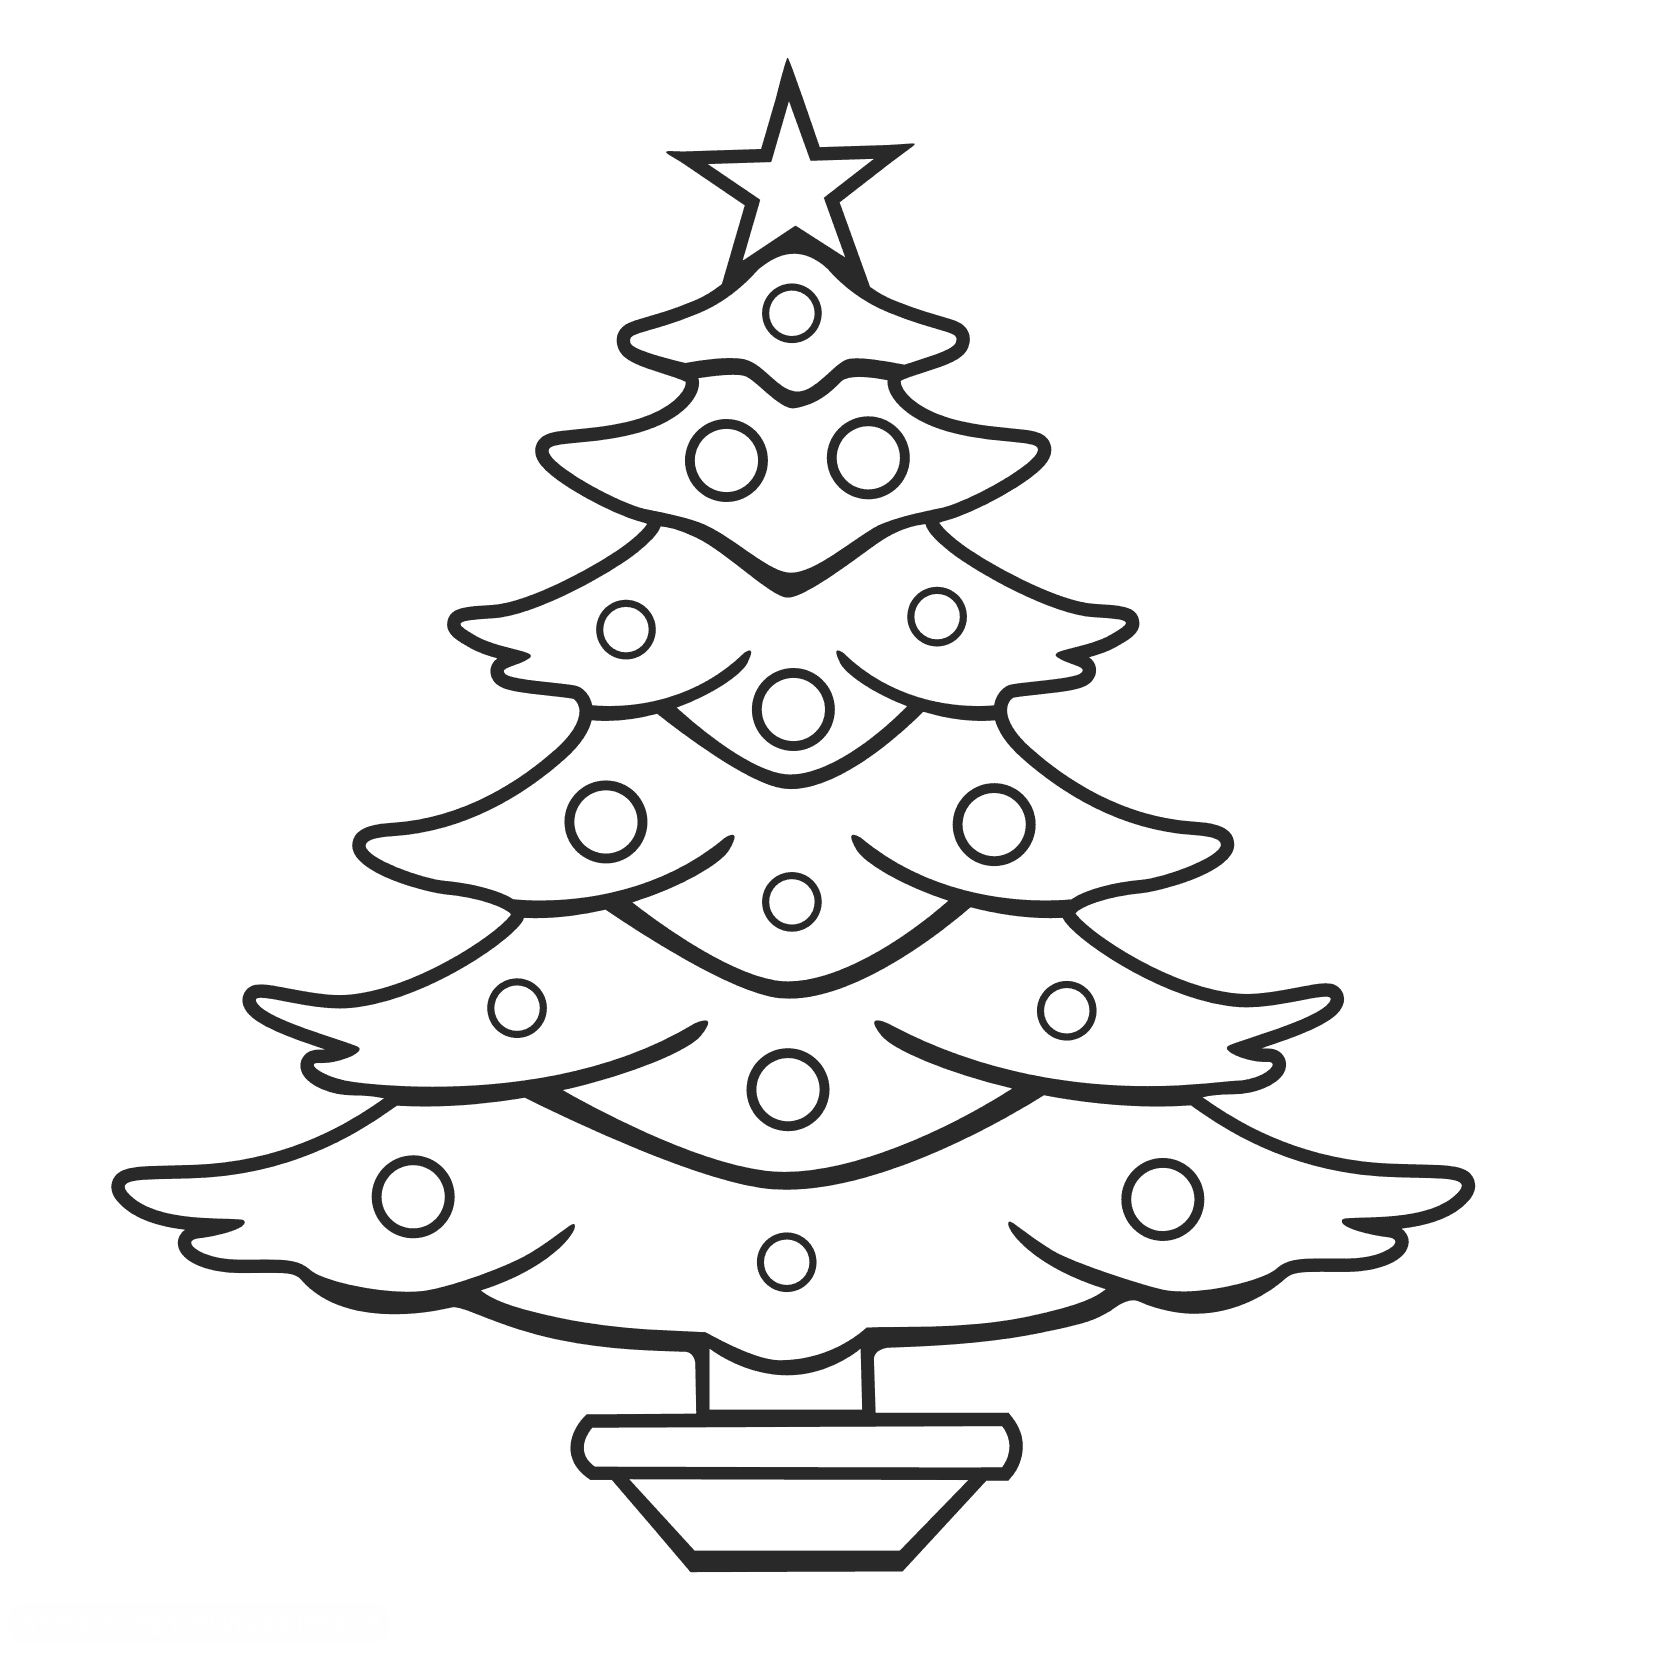 Colouring in xmas tree - Xmas Tree Coloring Pages